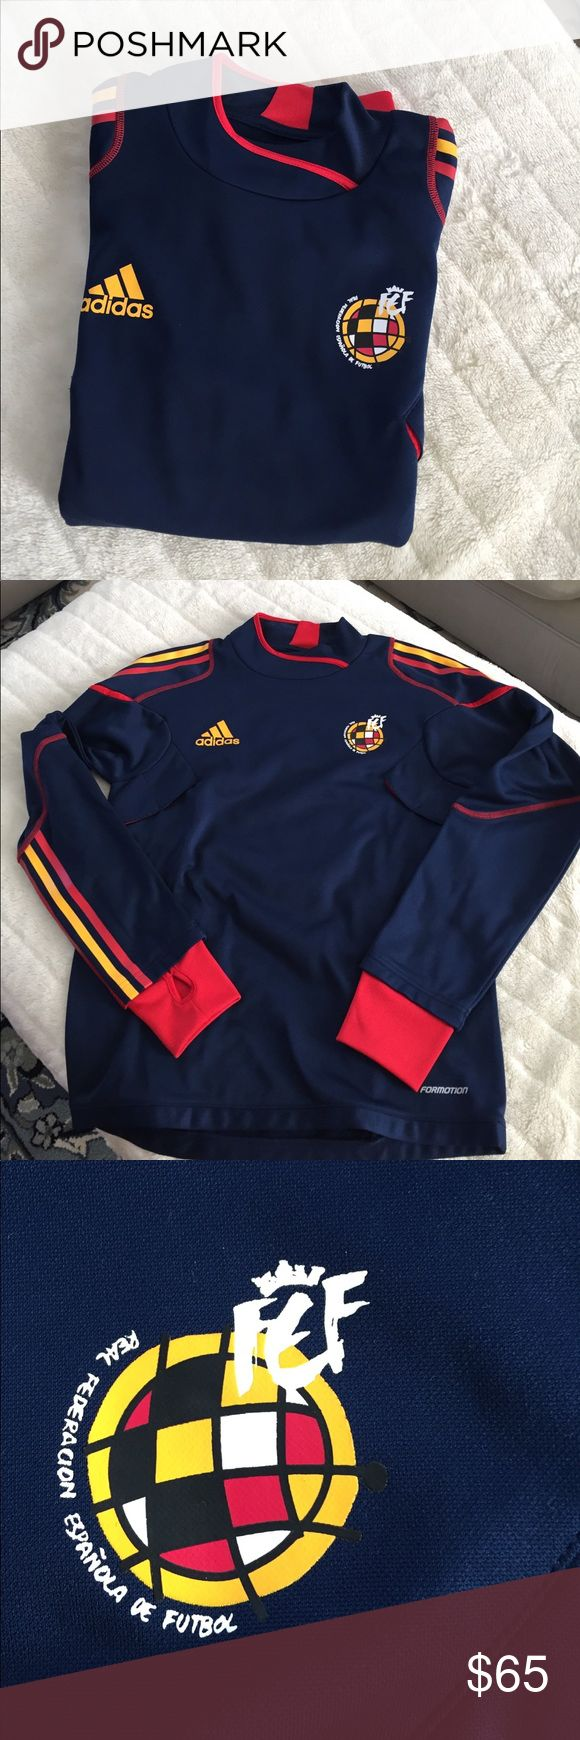 REAL FEDERACION ESPAÑOLA DE FÚTBOL ⚽️ SWEATER. Very good condition. This came out when Spain won the Fútbol World Cup adidas Shirts Sweatshirts & Hoodies